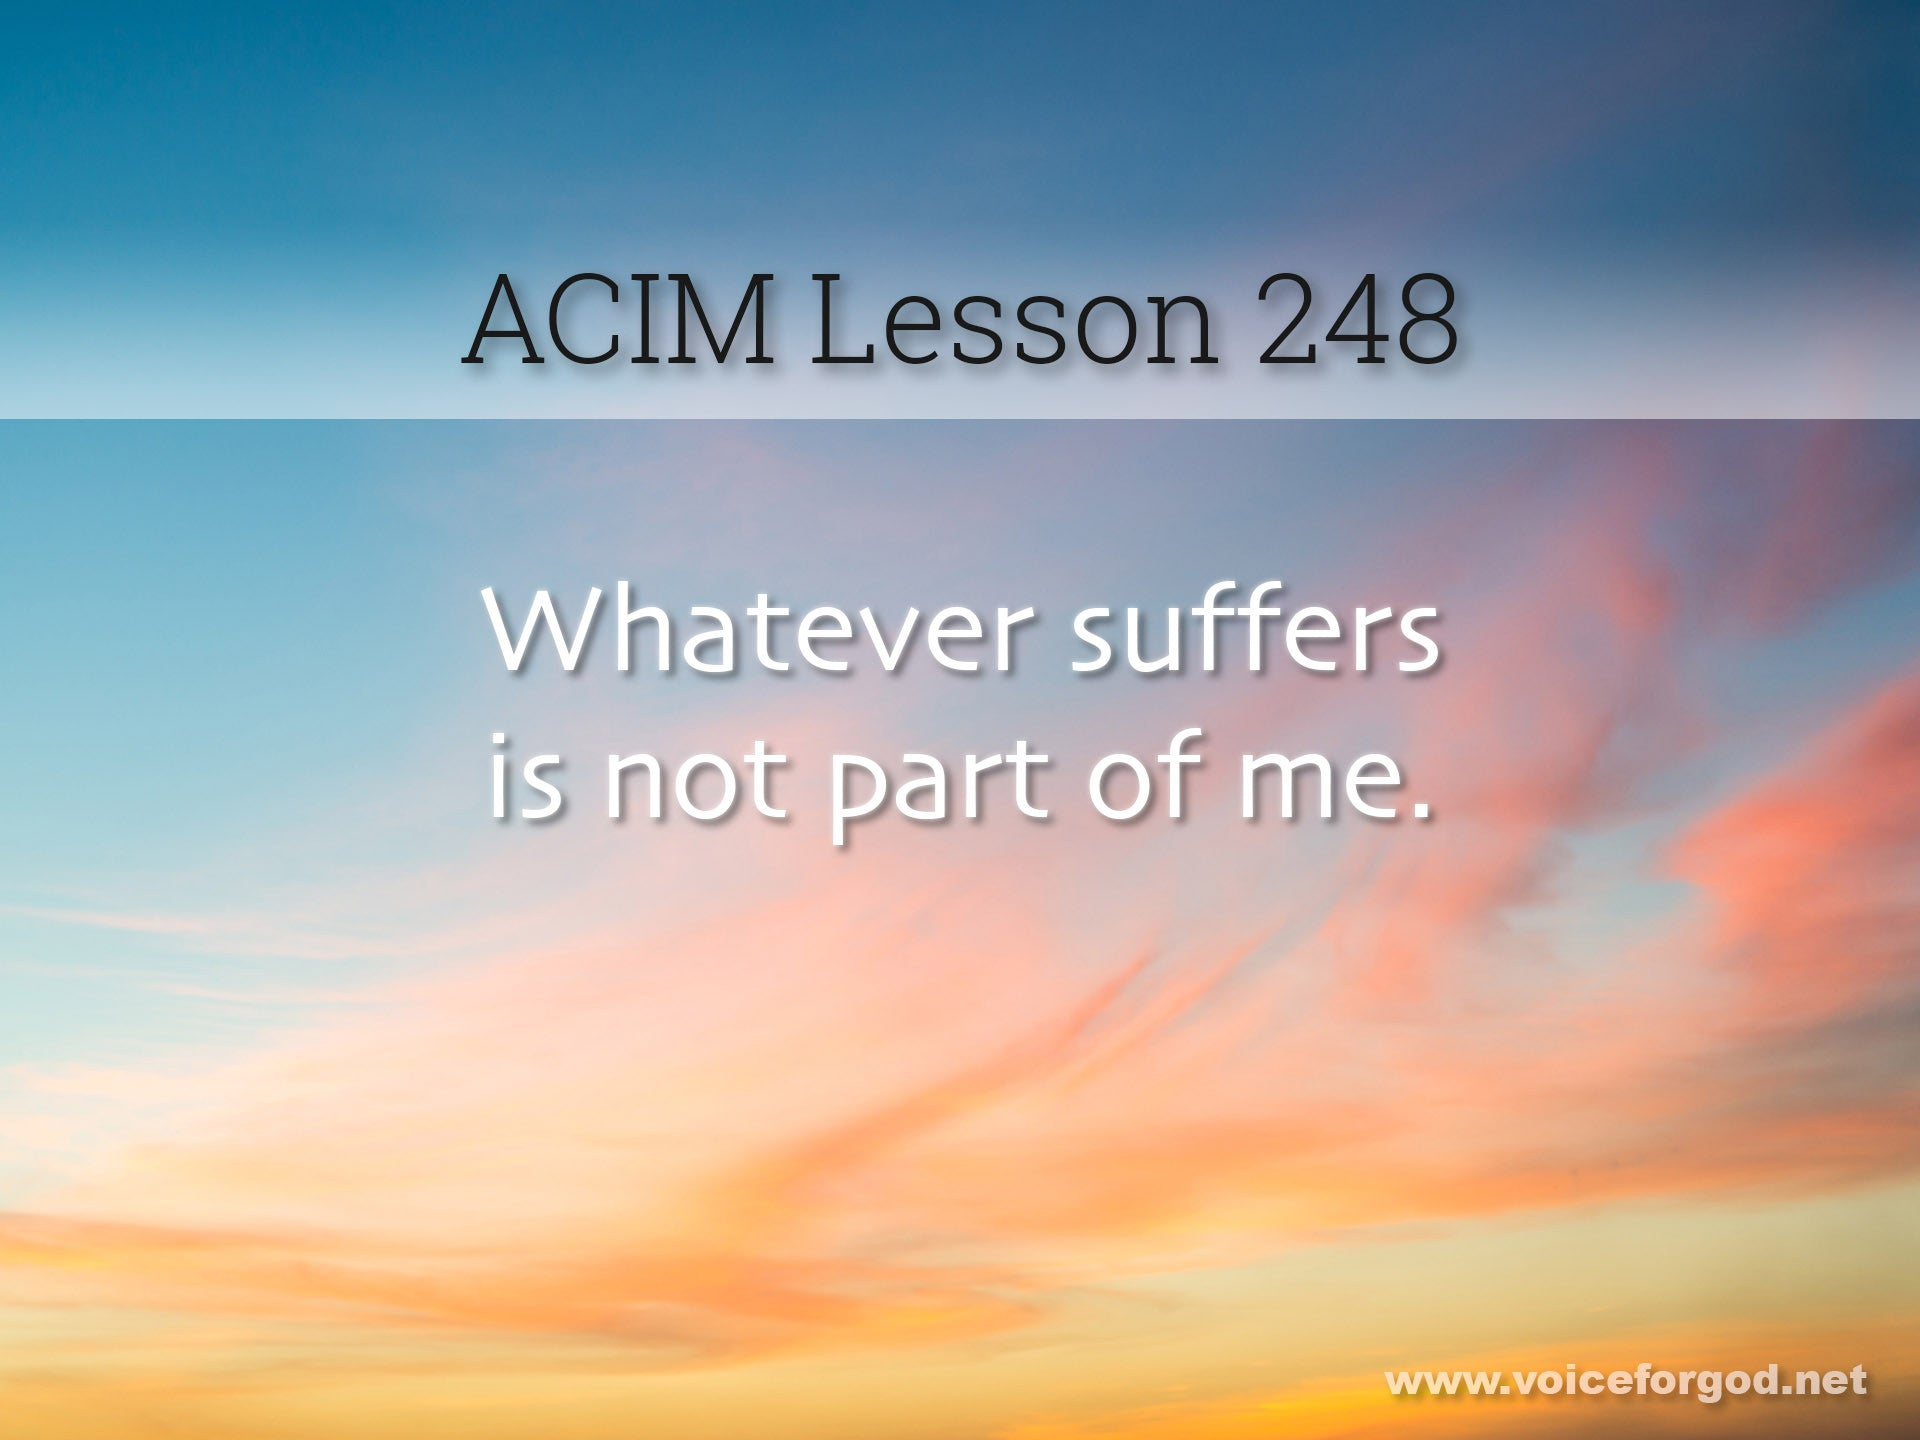 ACIM Lesson 248 - A Course in Miracles Workbook Lesson 248